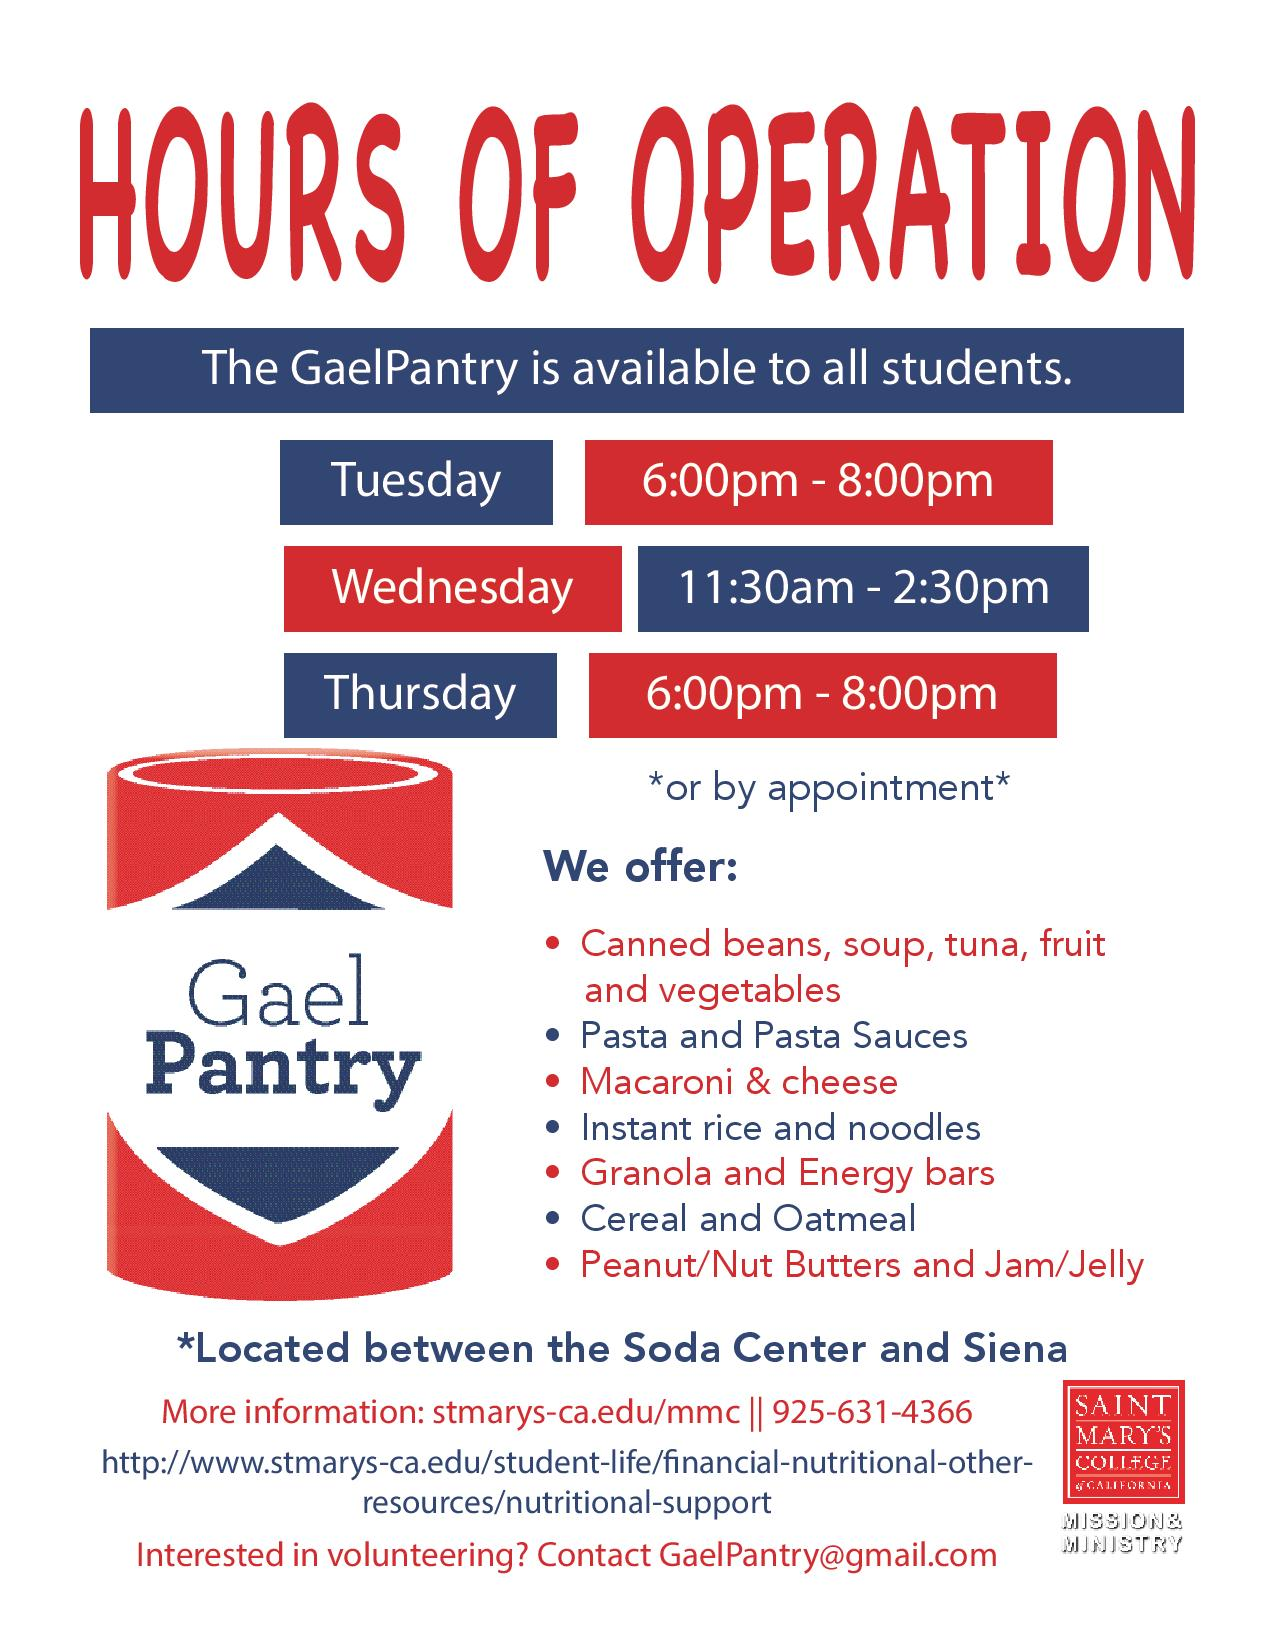 GaelPantry Hours of Operation